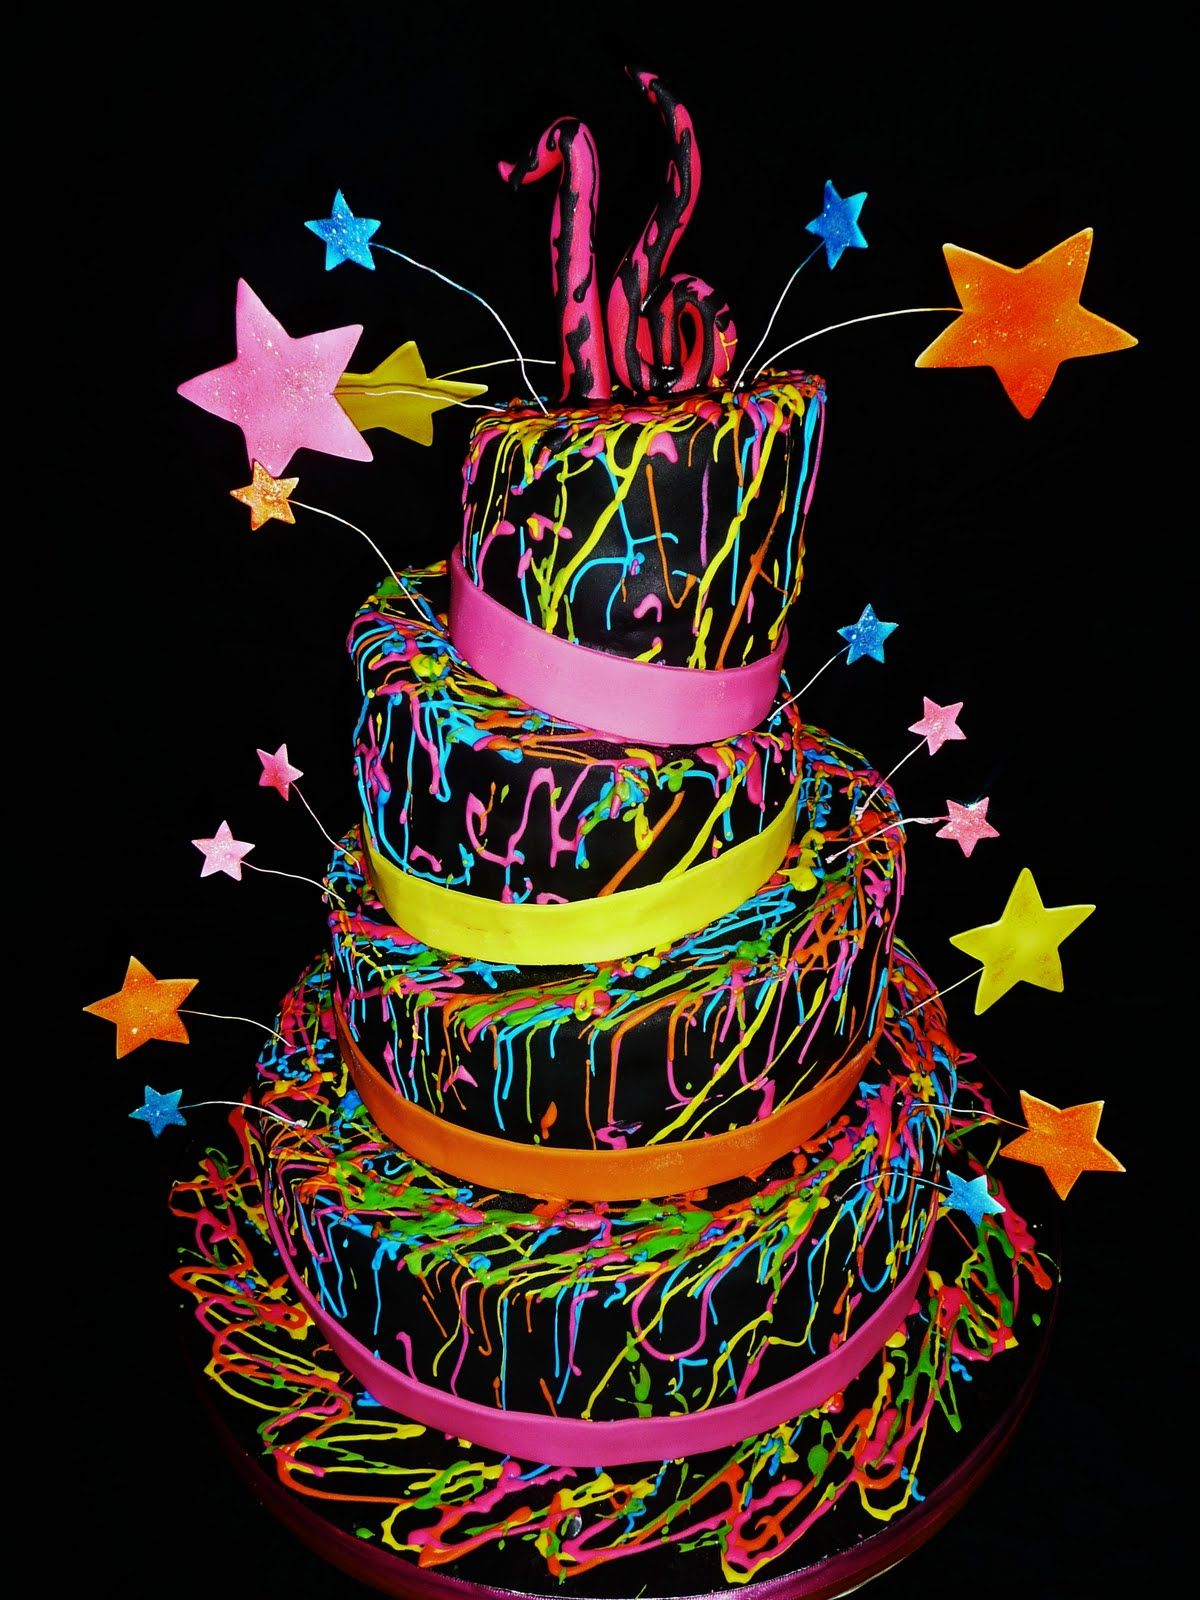 Glow In The Dark Cake Awesomeness Fun Cakescupcakes Pinterest